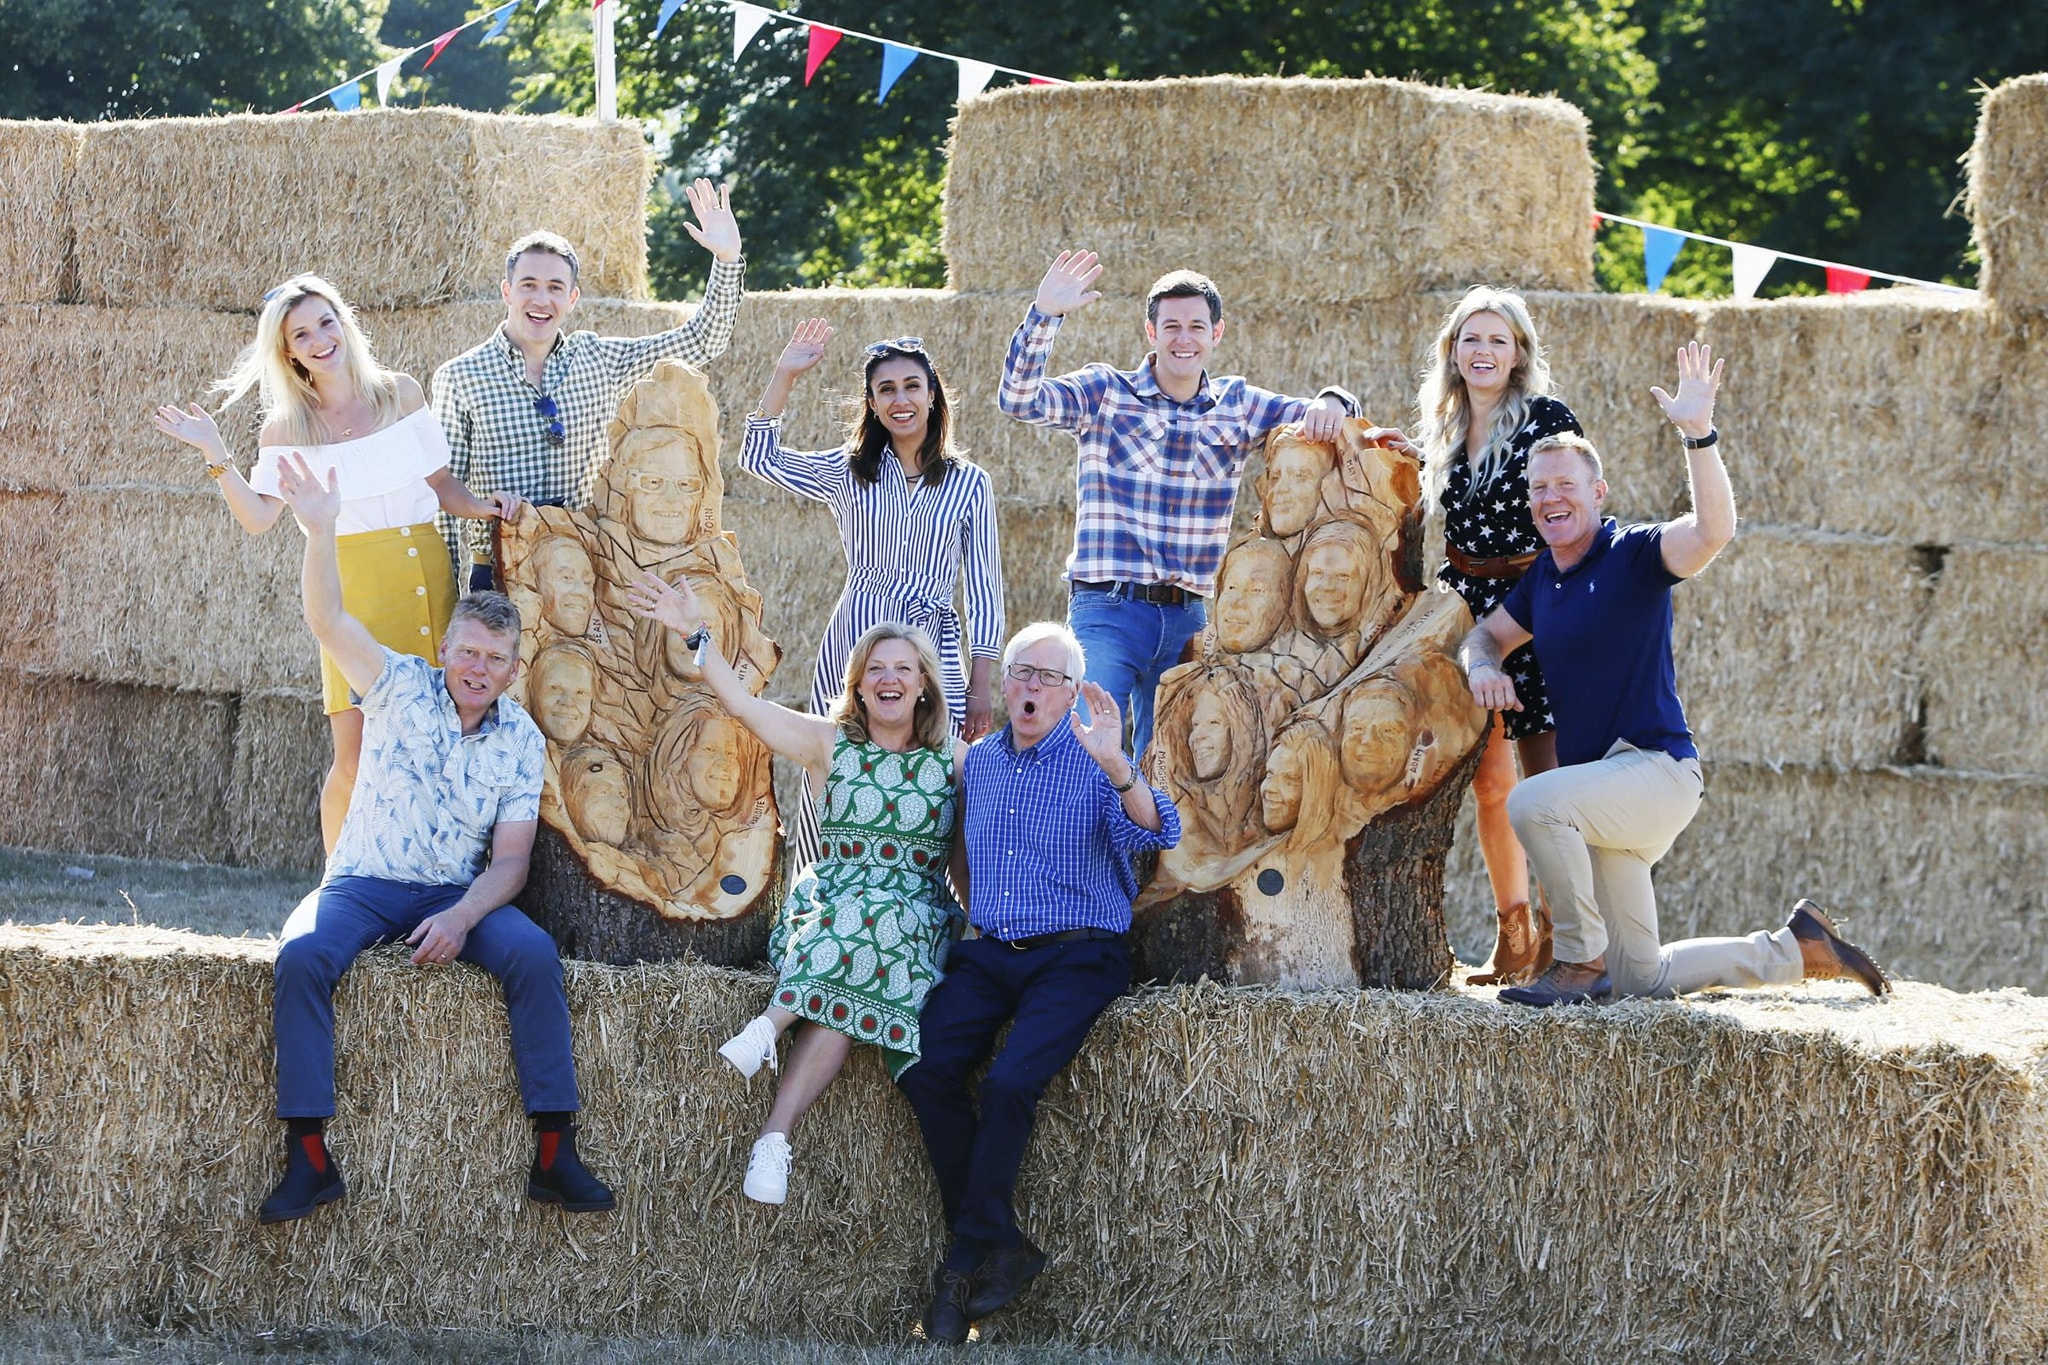 TV themed sculptures by simon o'rourke. Countryfile presenters sitting with their likelnesses carved into two pieces of wood by simon o'rourke